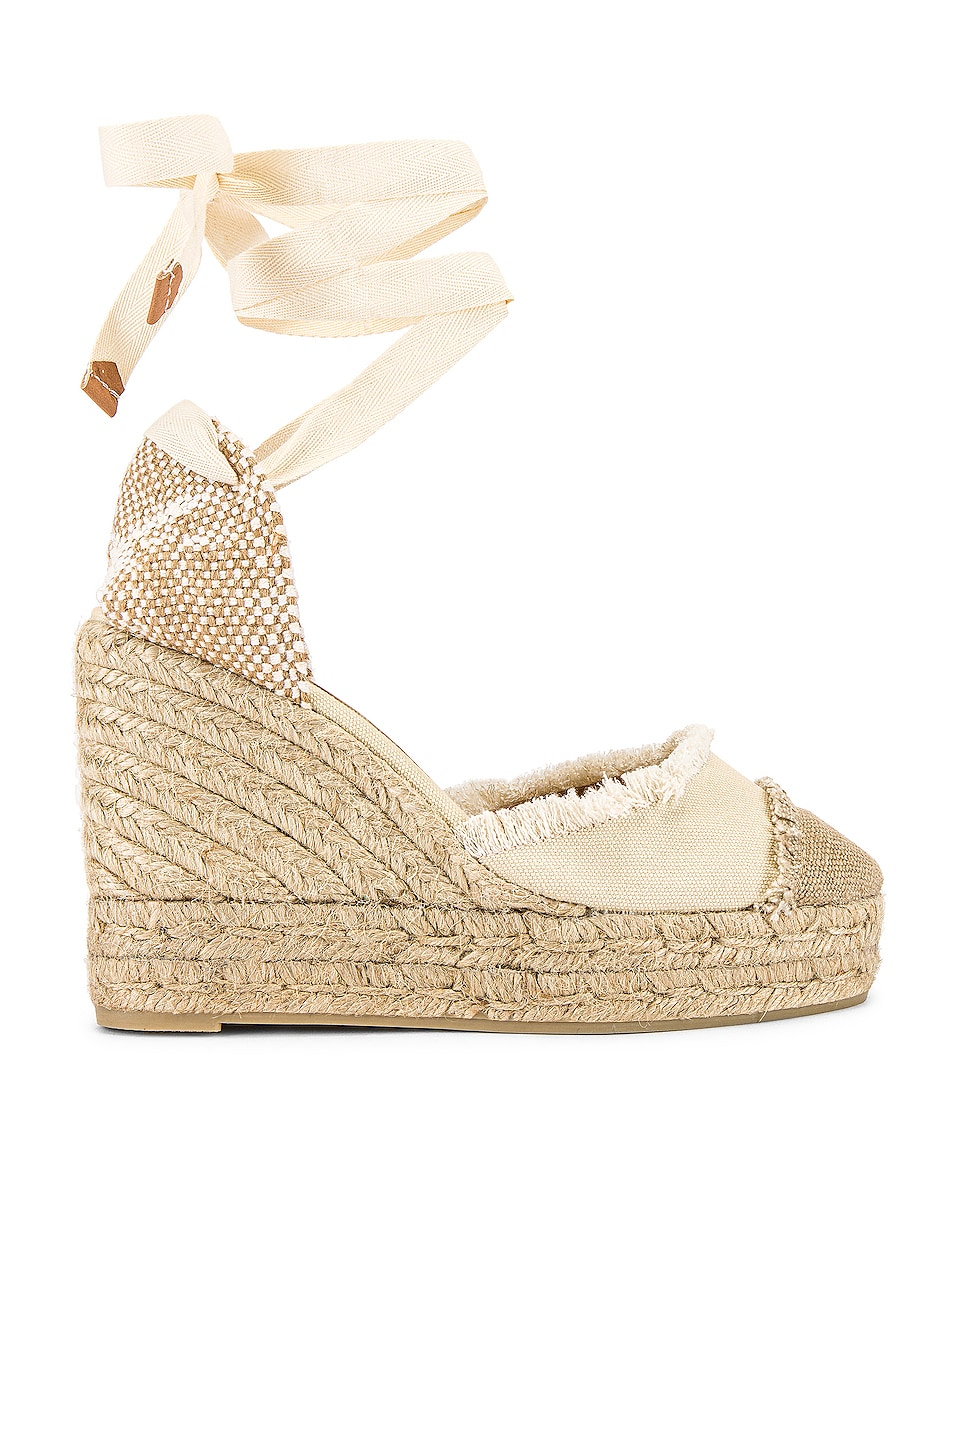 Castaner Catalina Wedge in Ivory